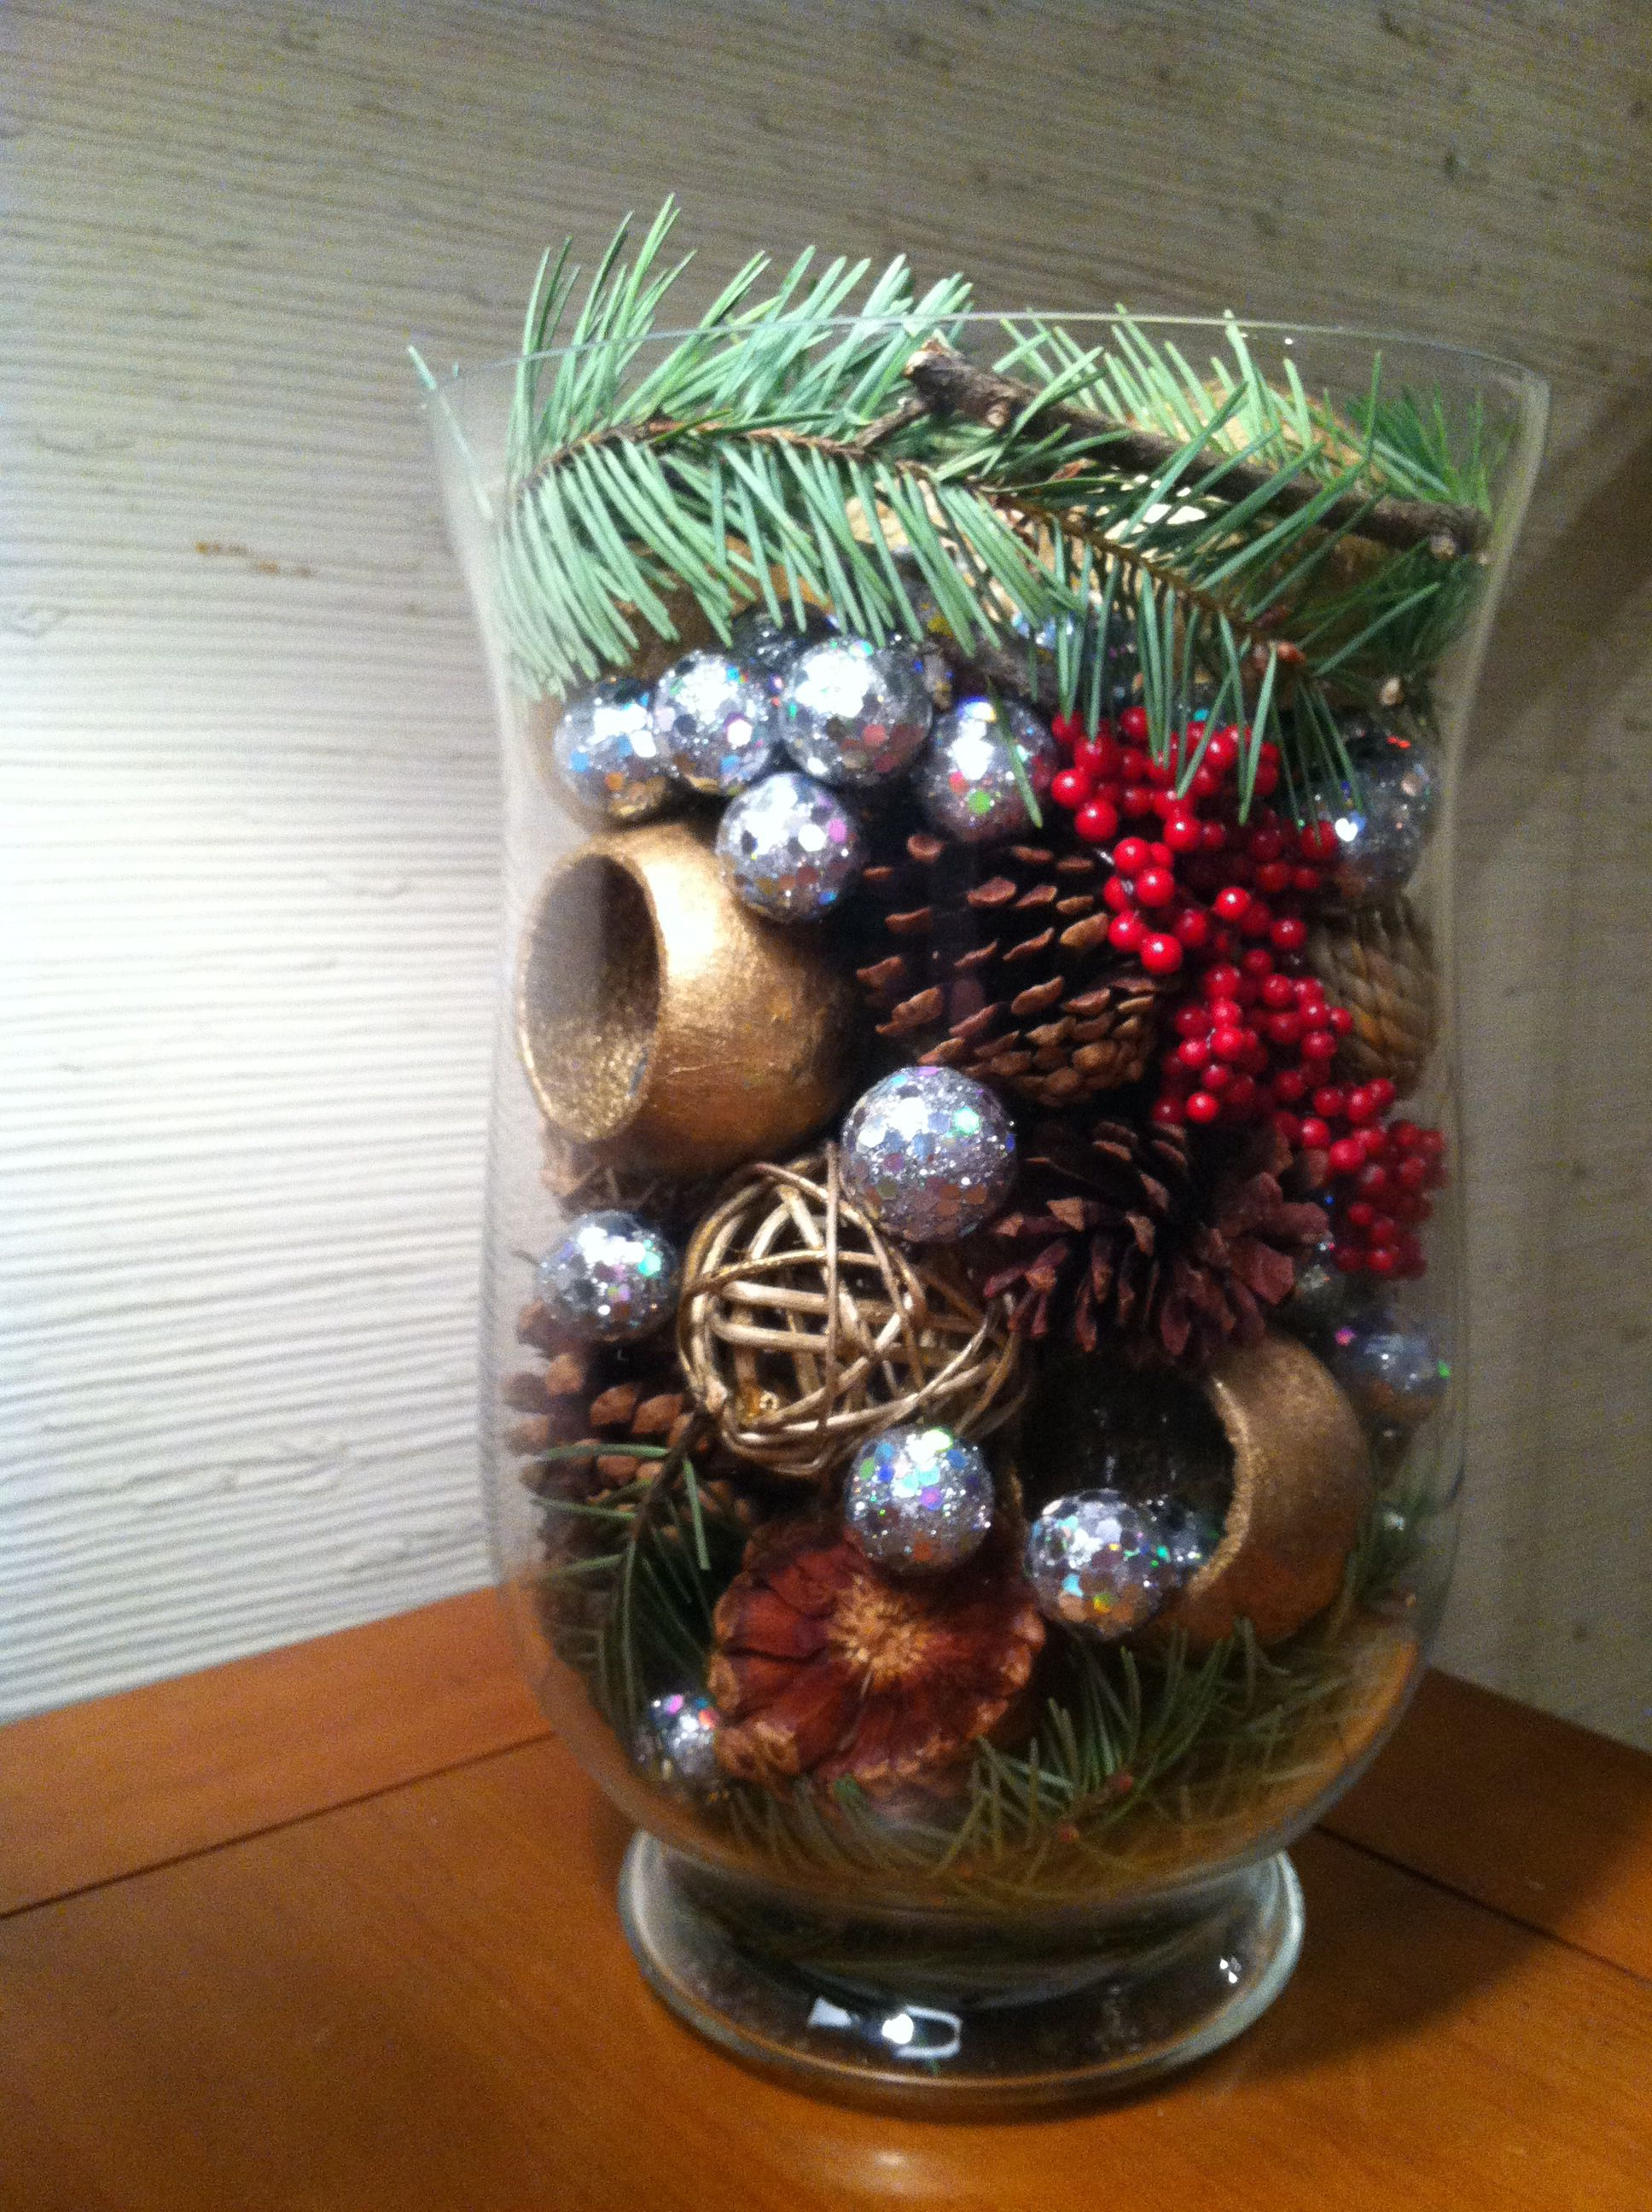 Christmas Decor Made With Pine Tree Branches Pine Cones Silver Balls And Misc Leftover Leftover Christmas Tree Cool Christmas Trees Christmas Tree Branches